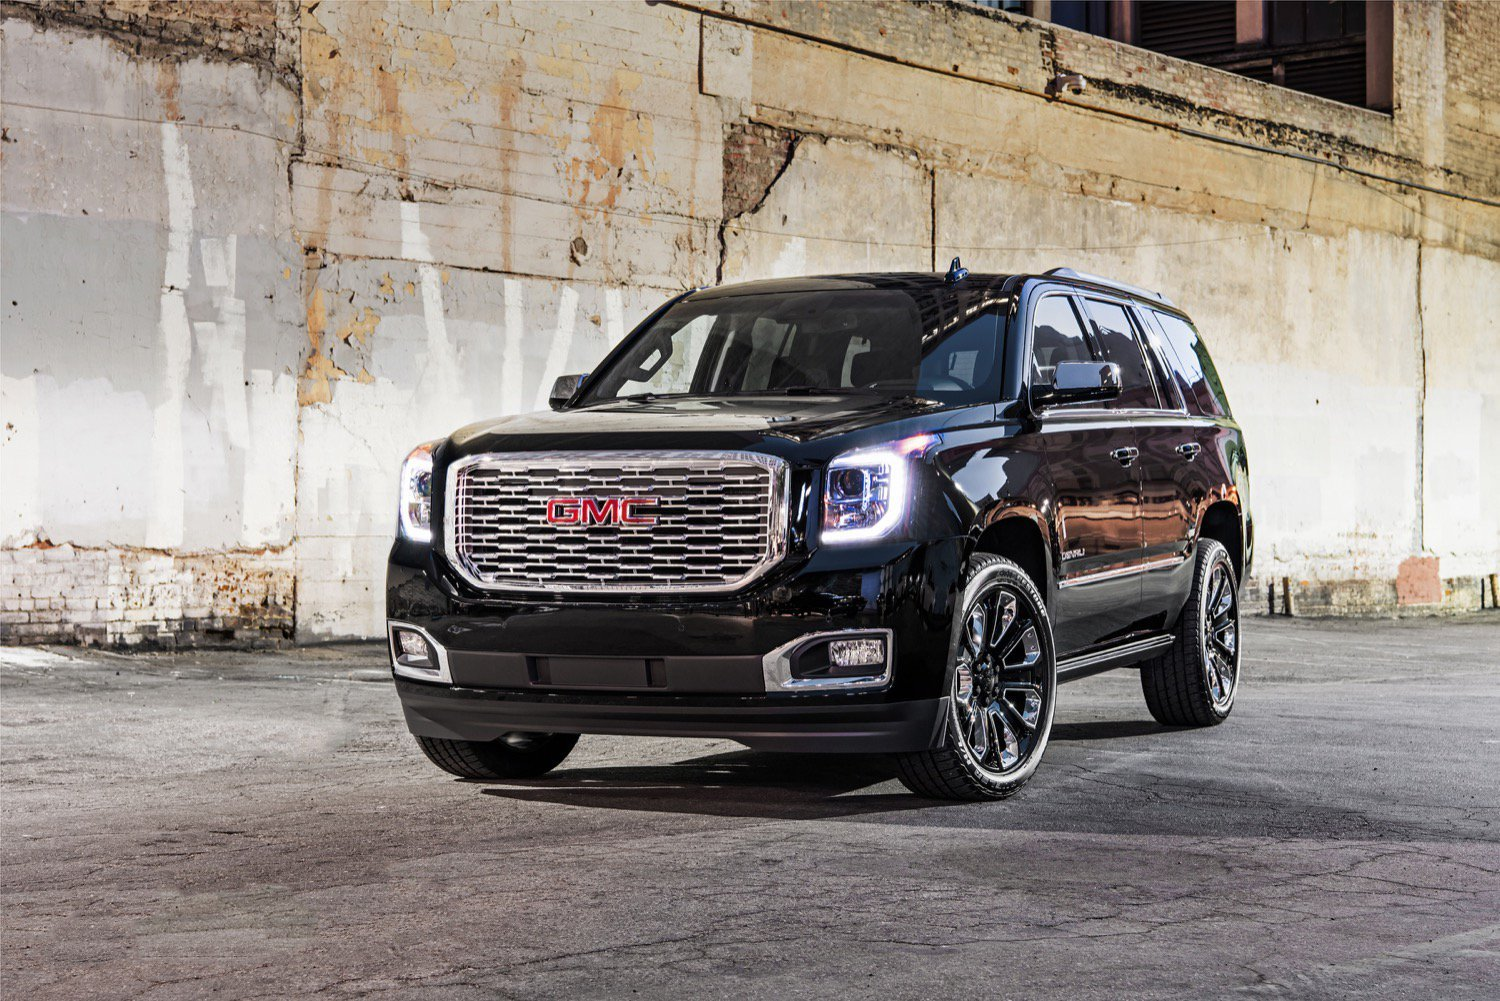 61 All New 2020 GMC Yukon Denali Xl Wallpaper